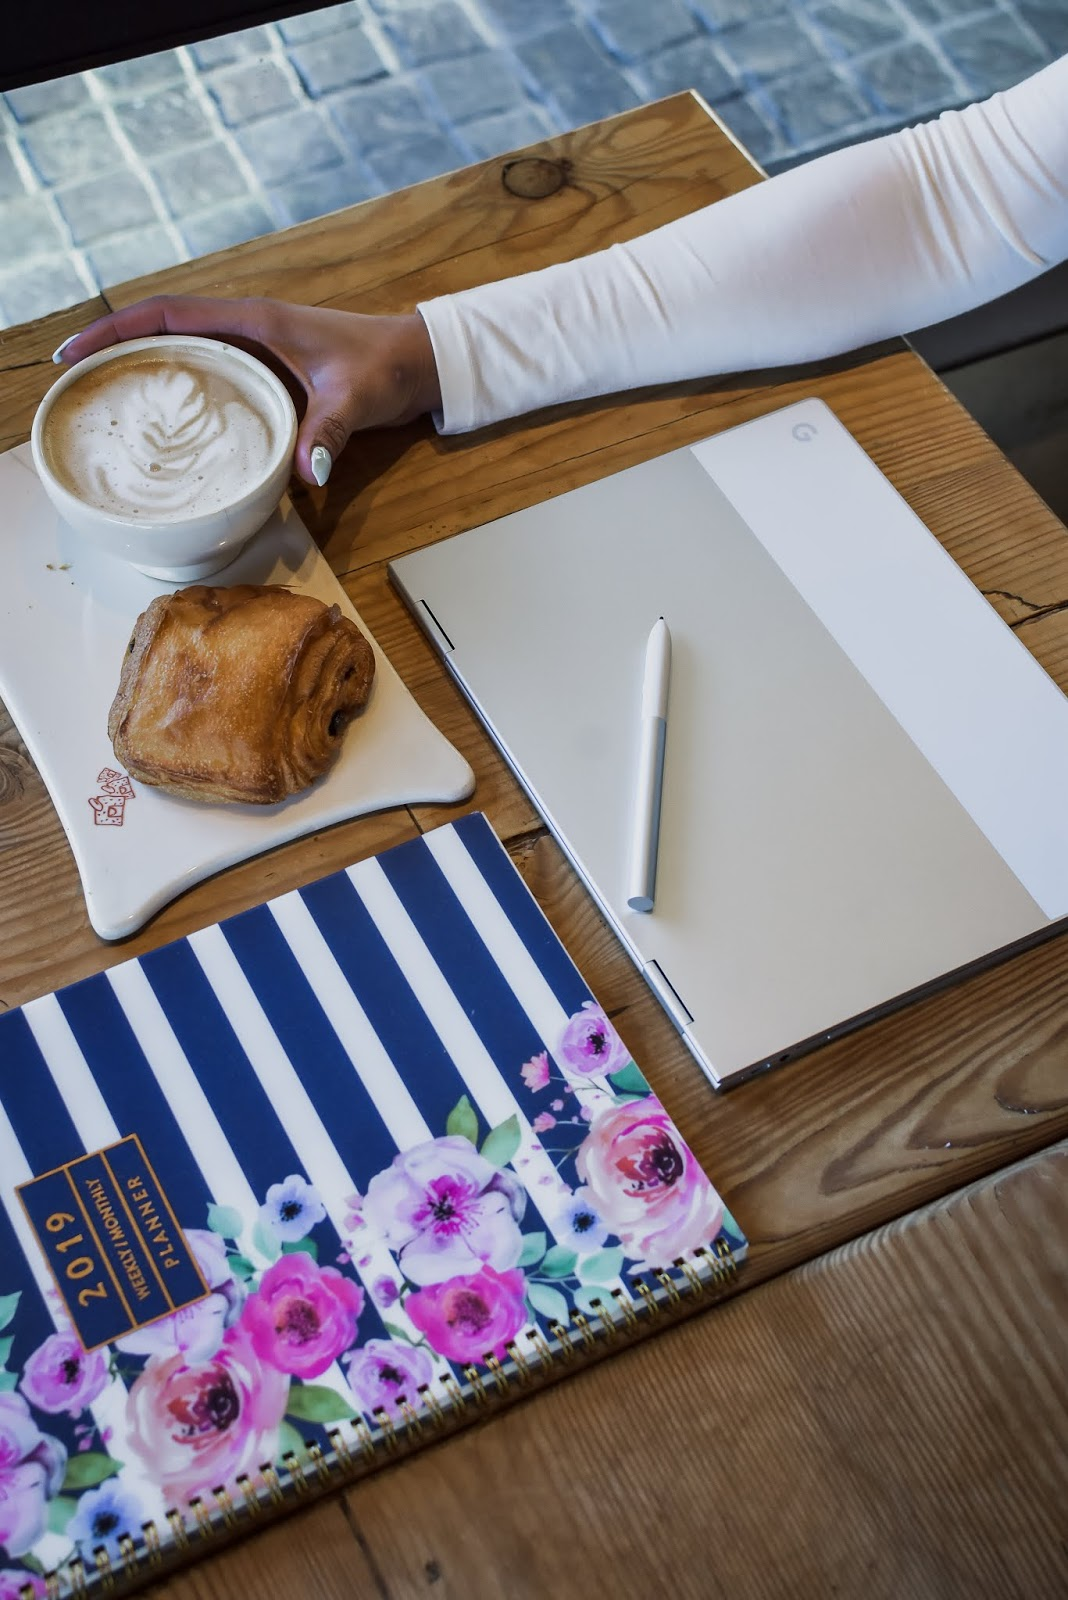 google pixelbook for bloggers, chromebook review, fashion blog, Dc blogger, saumya shiohare, best laptop for kids, myriad musings